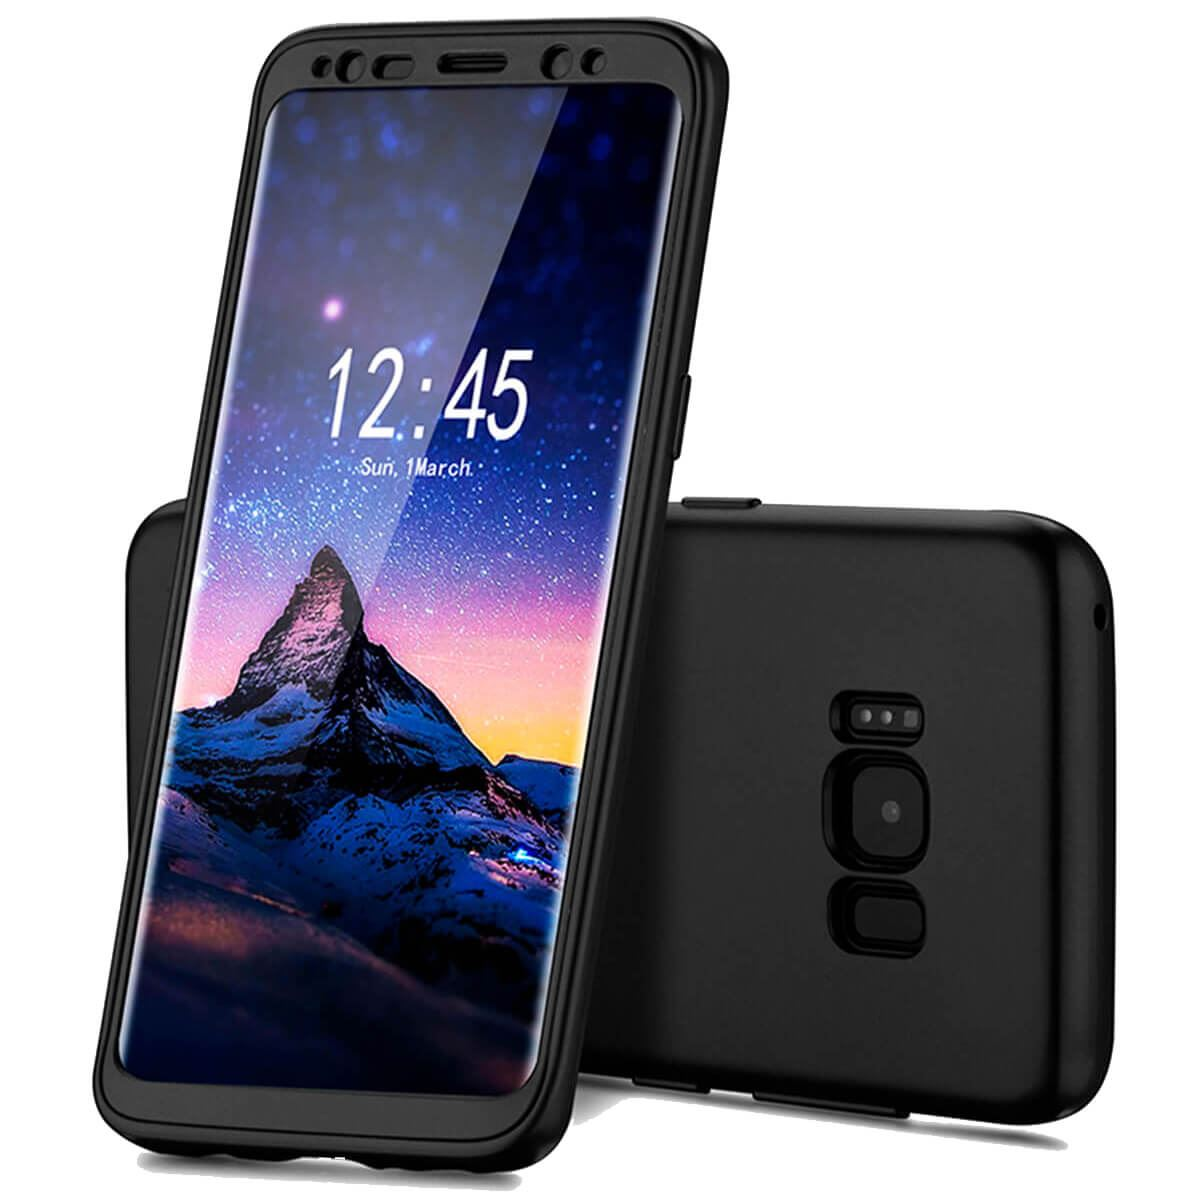 ShockProof-Thin-Case-For-Samsung-Galaxy-S7-edge-S8-Plus-Hybrid-360-TPU-Cover thumbnail 5